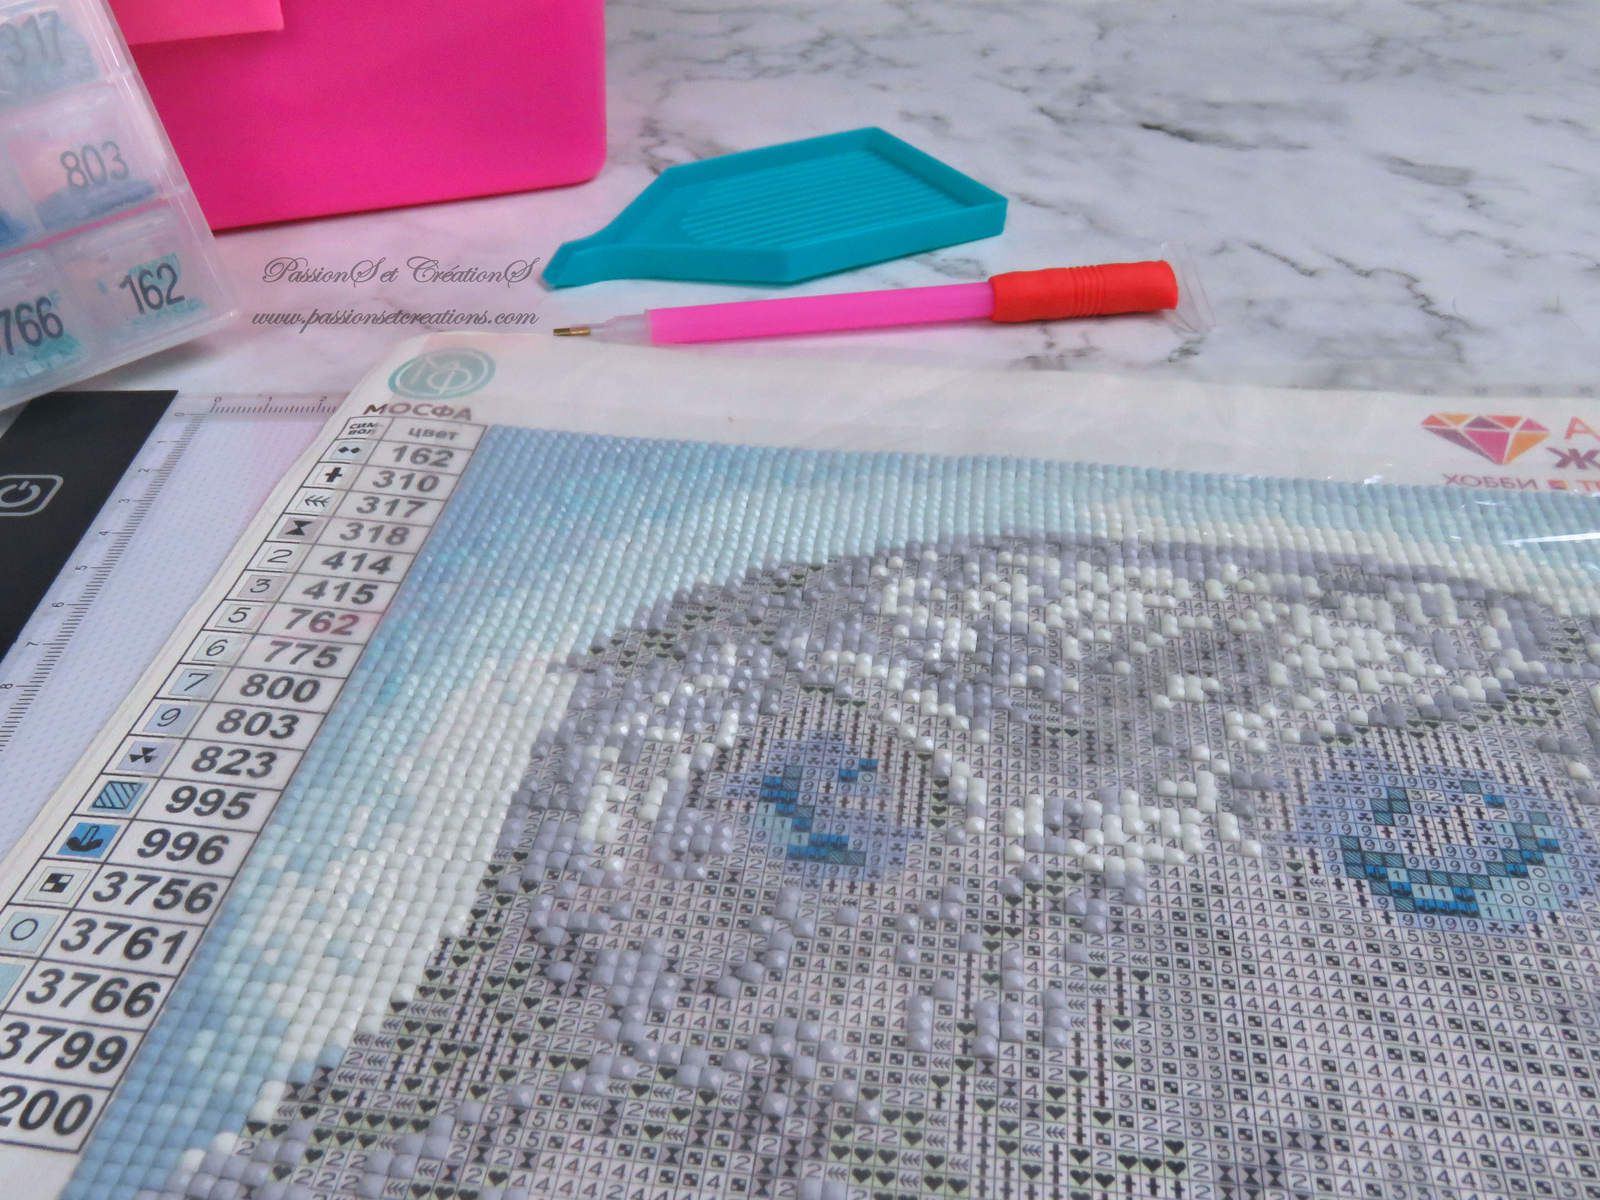 Chouette - Diamond painting - Confinement - Activitées - Strass - Outils - Stylos - Table Lumineuse - Speed Painting